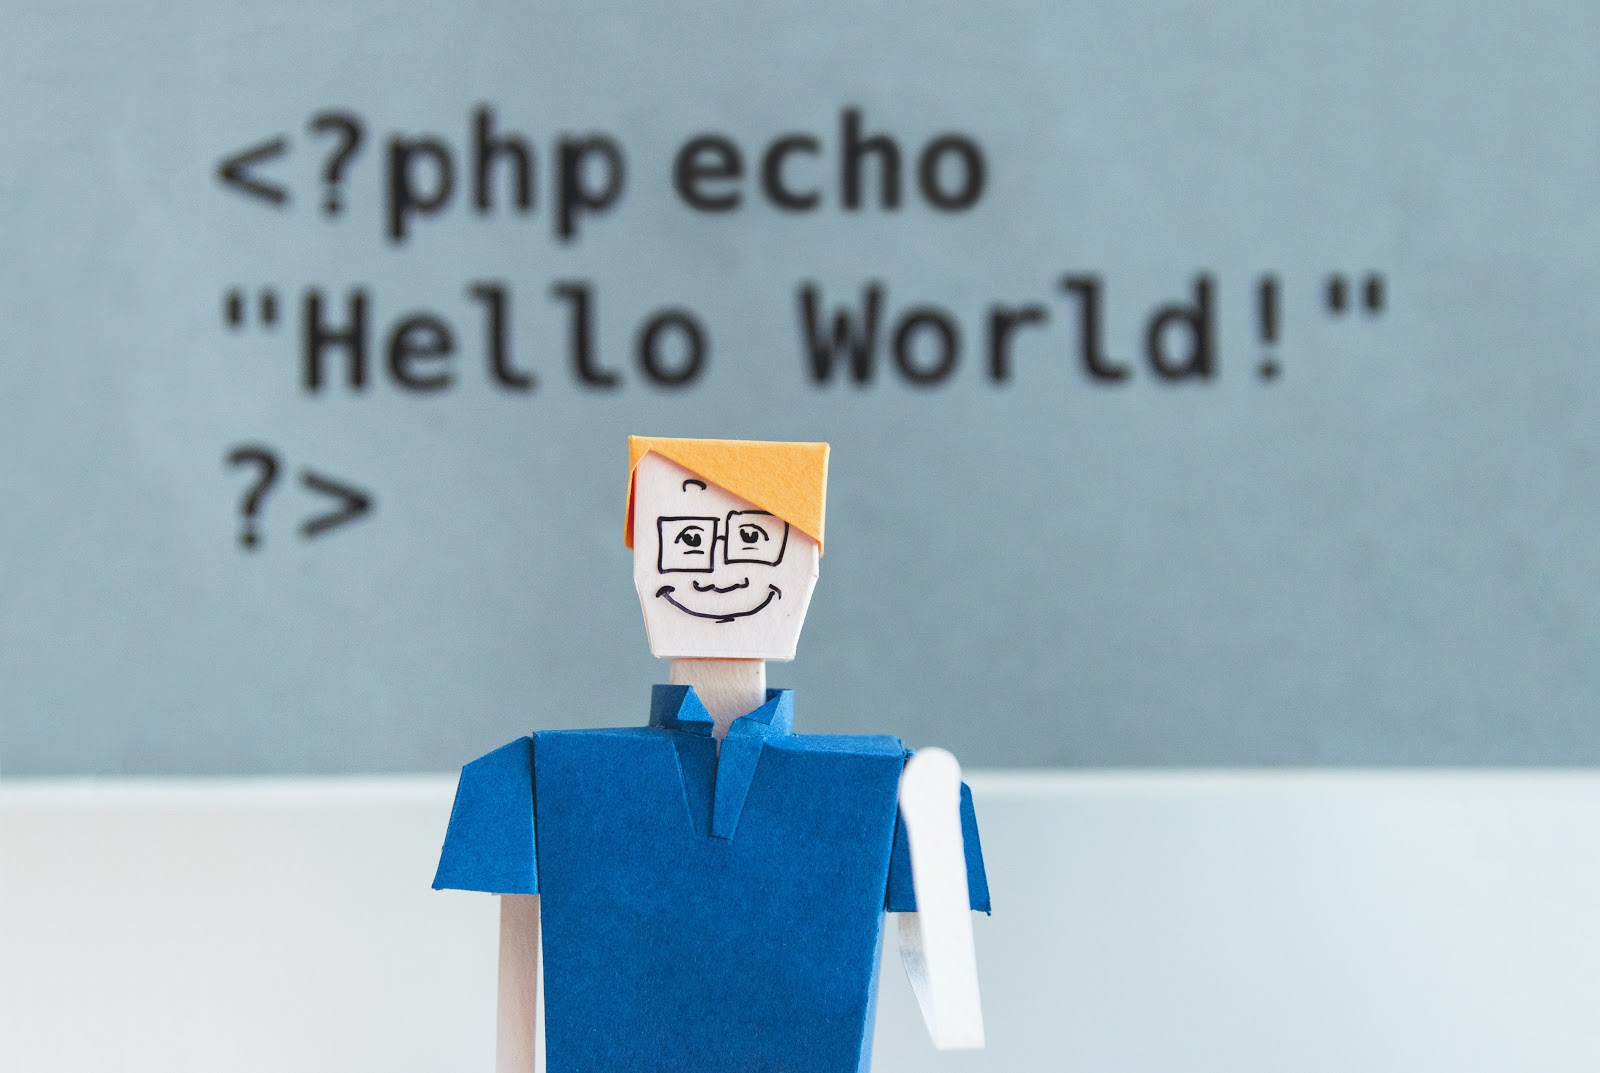 How to become an IT Helpdesk Technician, Hello World